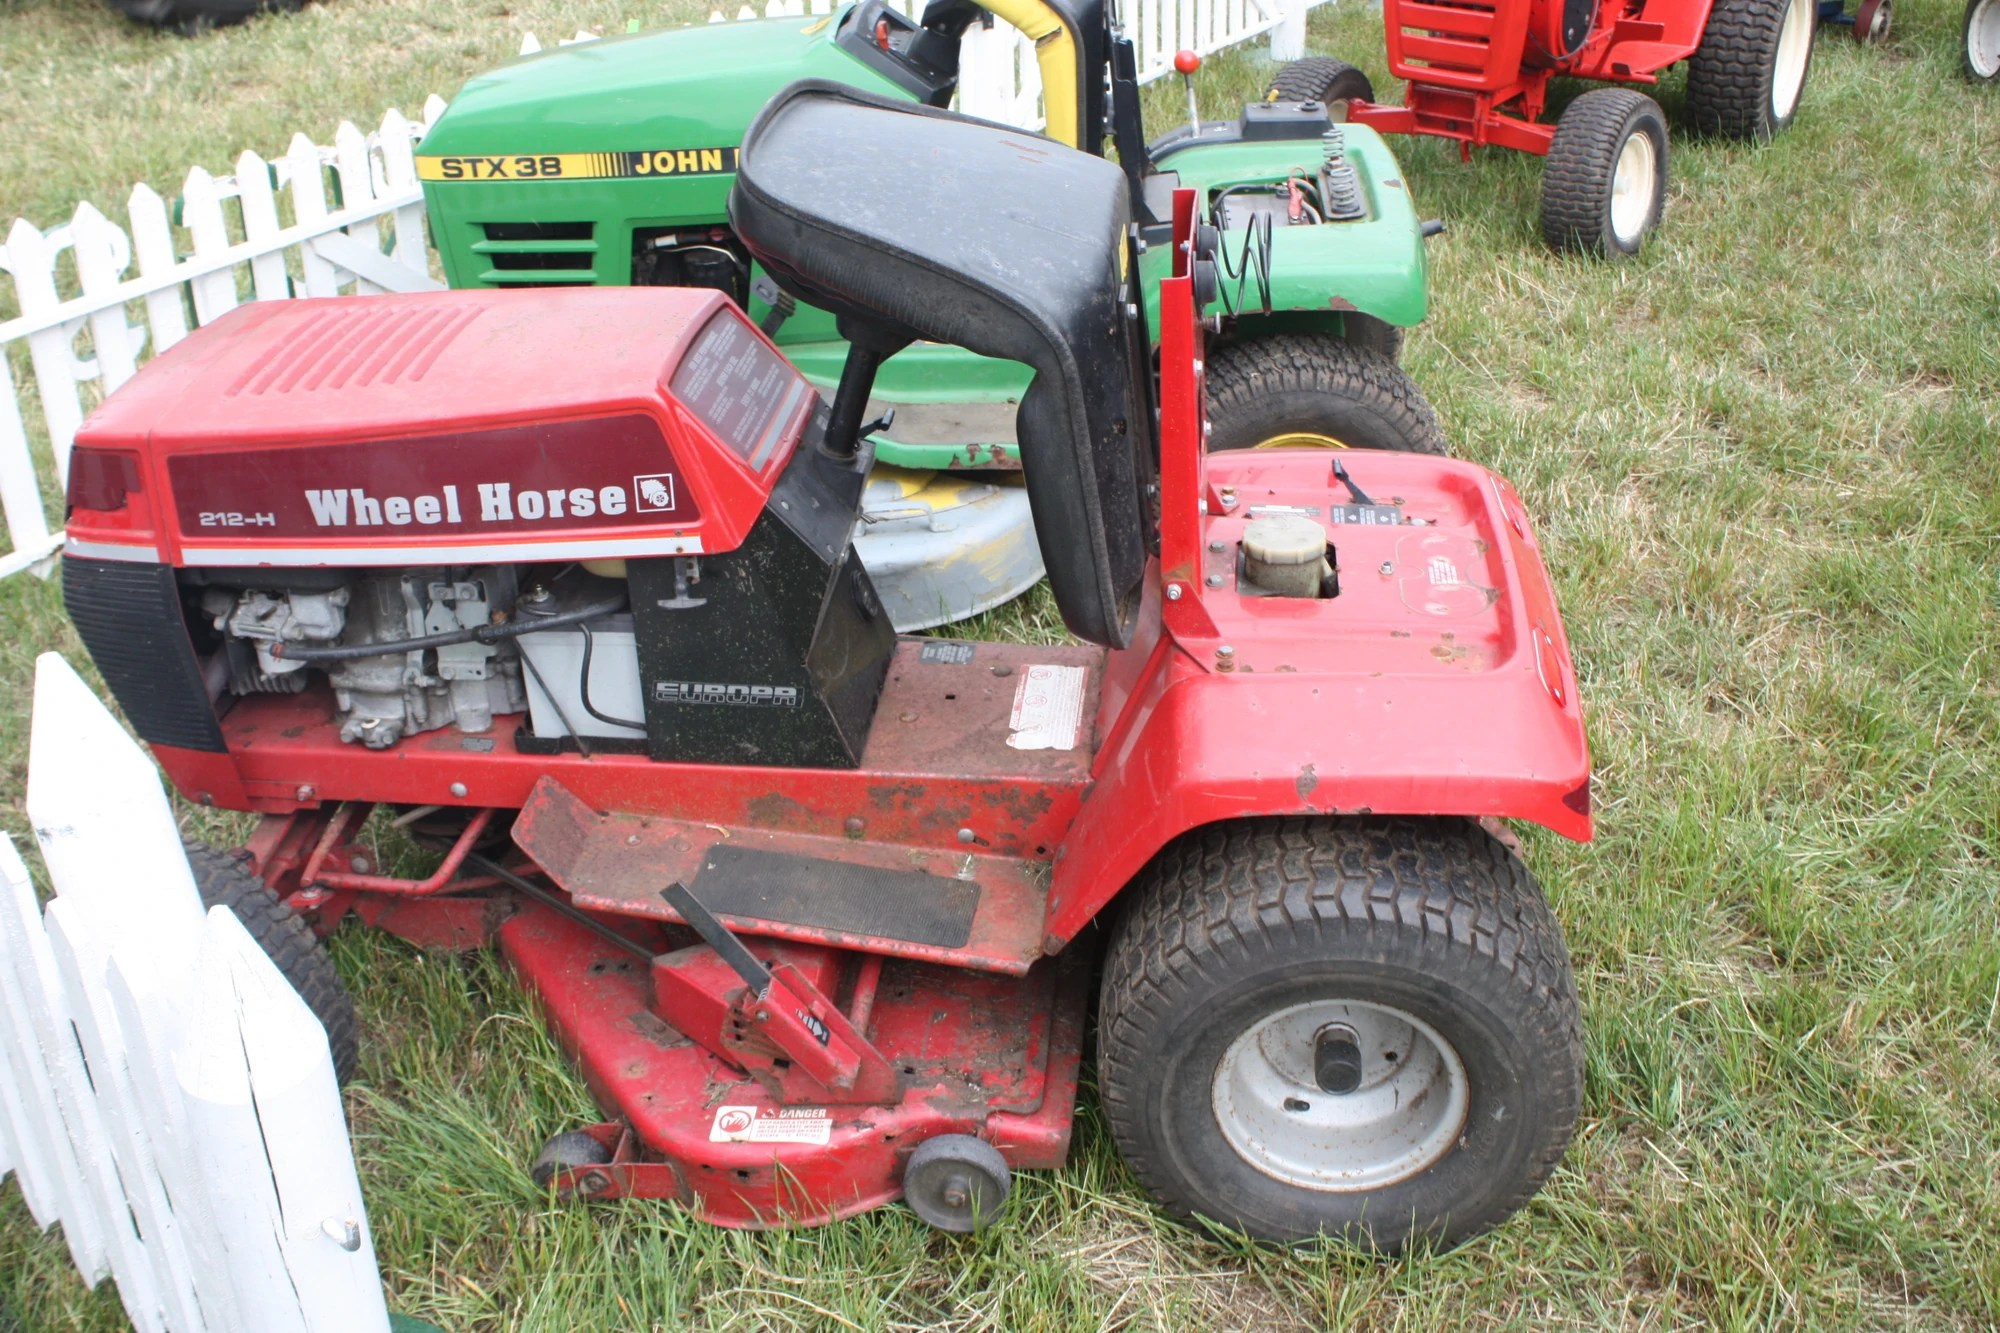 toro wheel horse 264h wiring diagram leaf structure unlabeled 212 h tractor and construction plant wiki